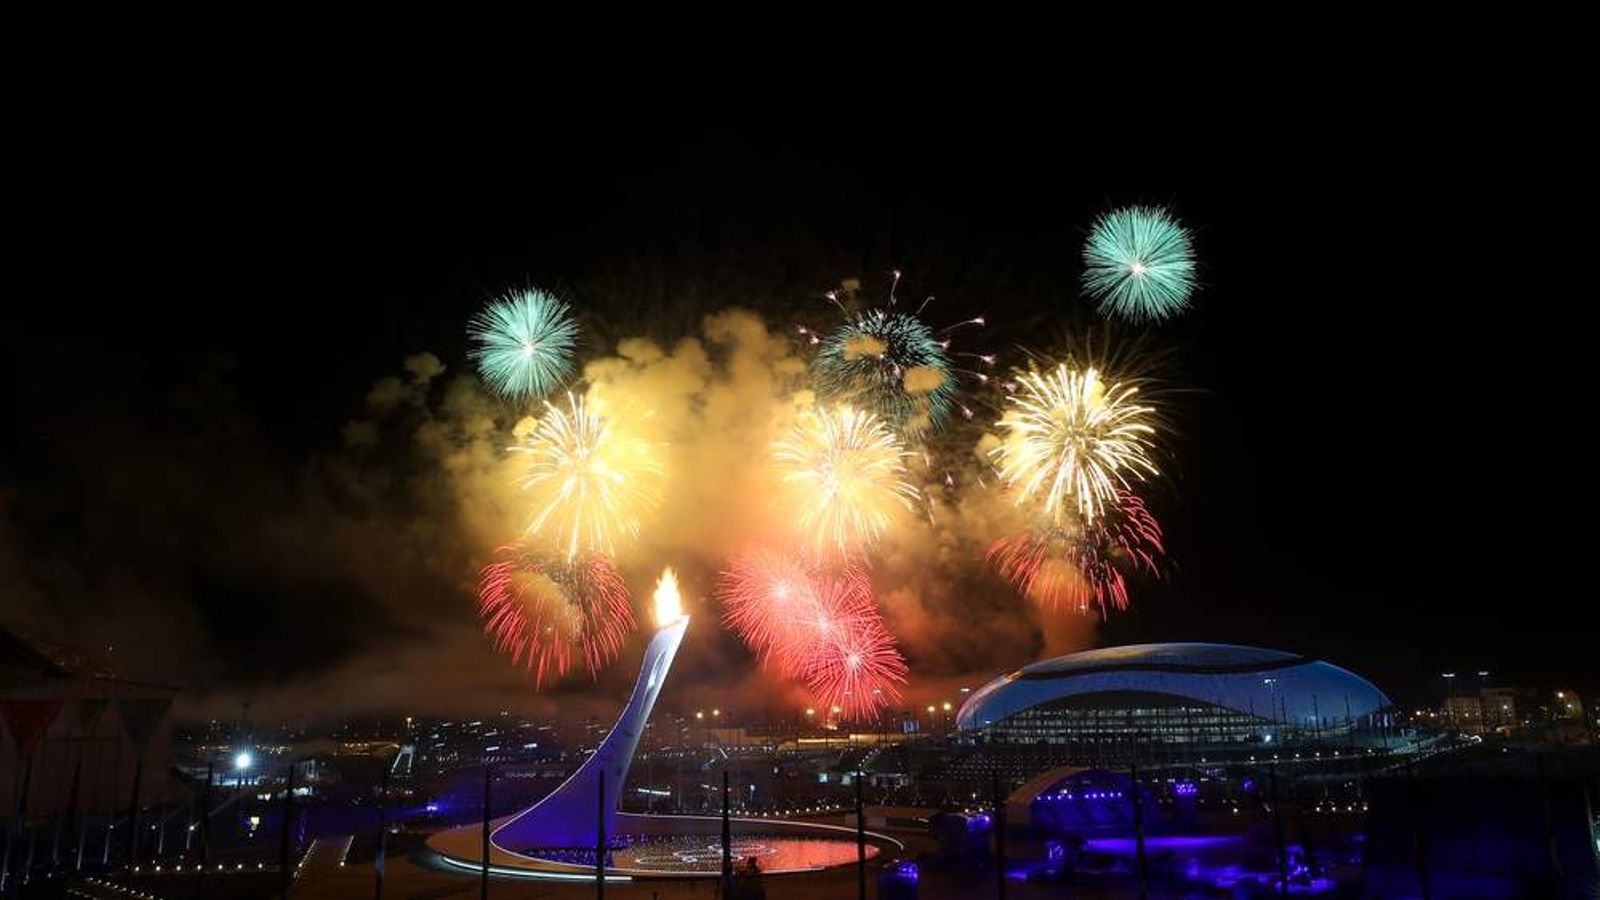 Fireworks burst over the Fisht Olympic Stadium for the opening ceremony of the Sochi Winter Olympics.